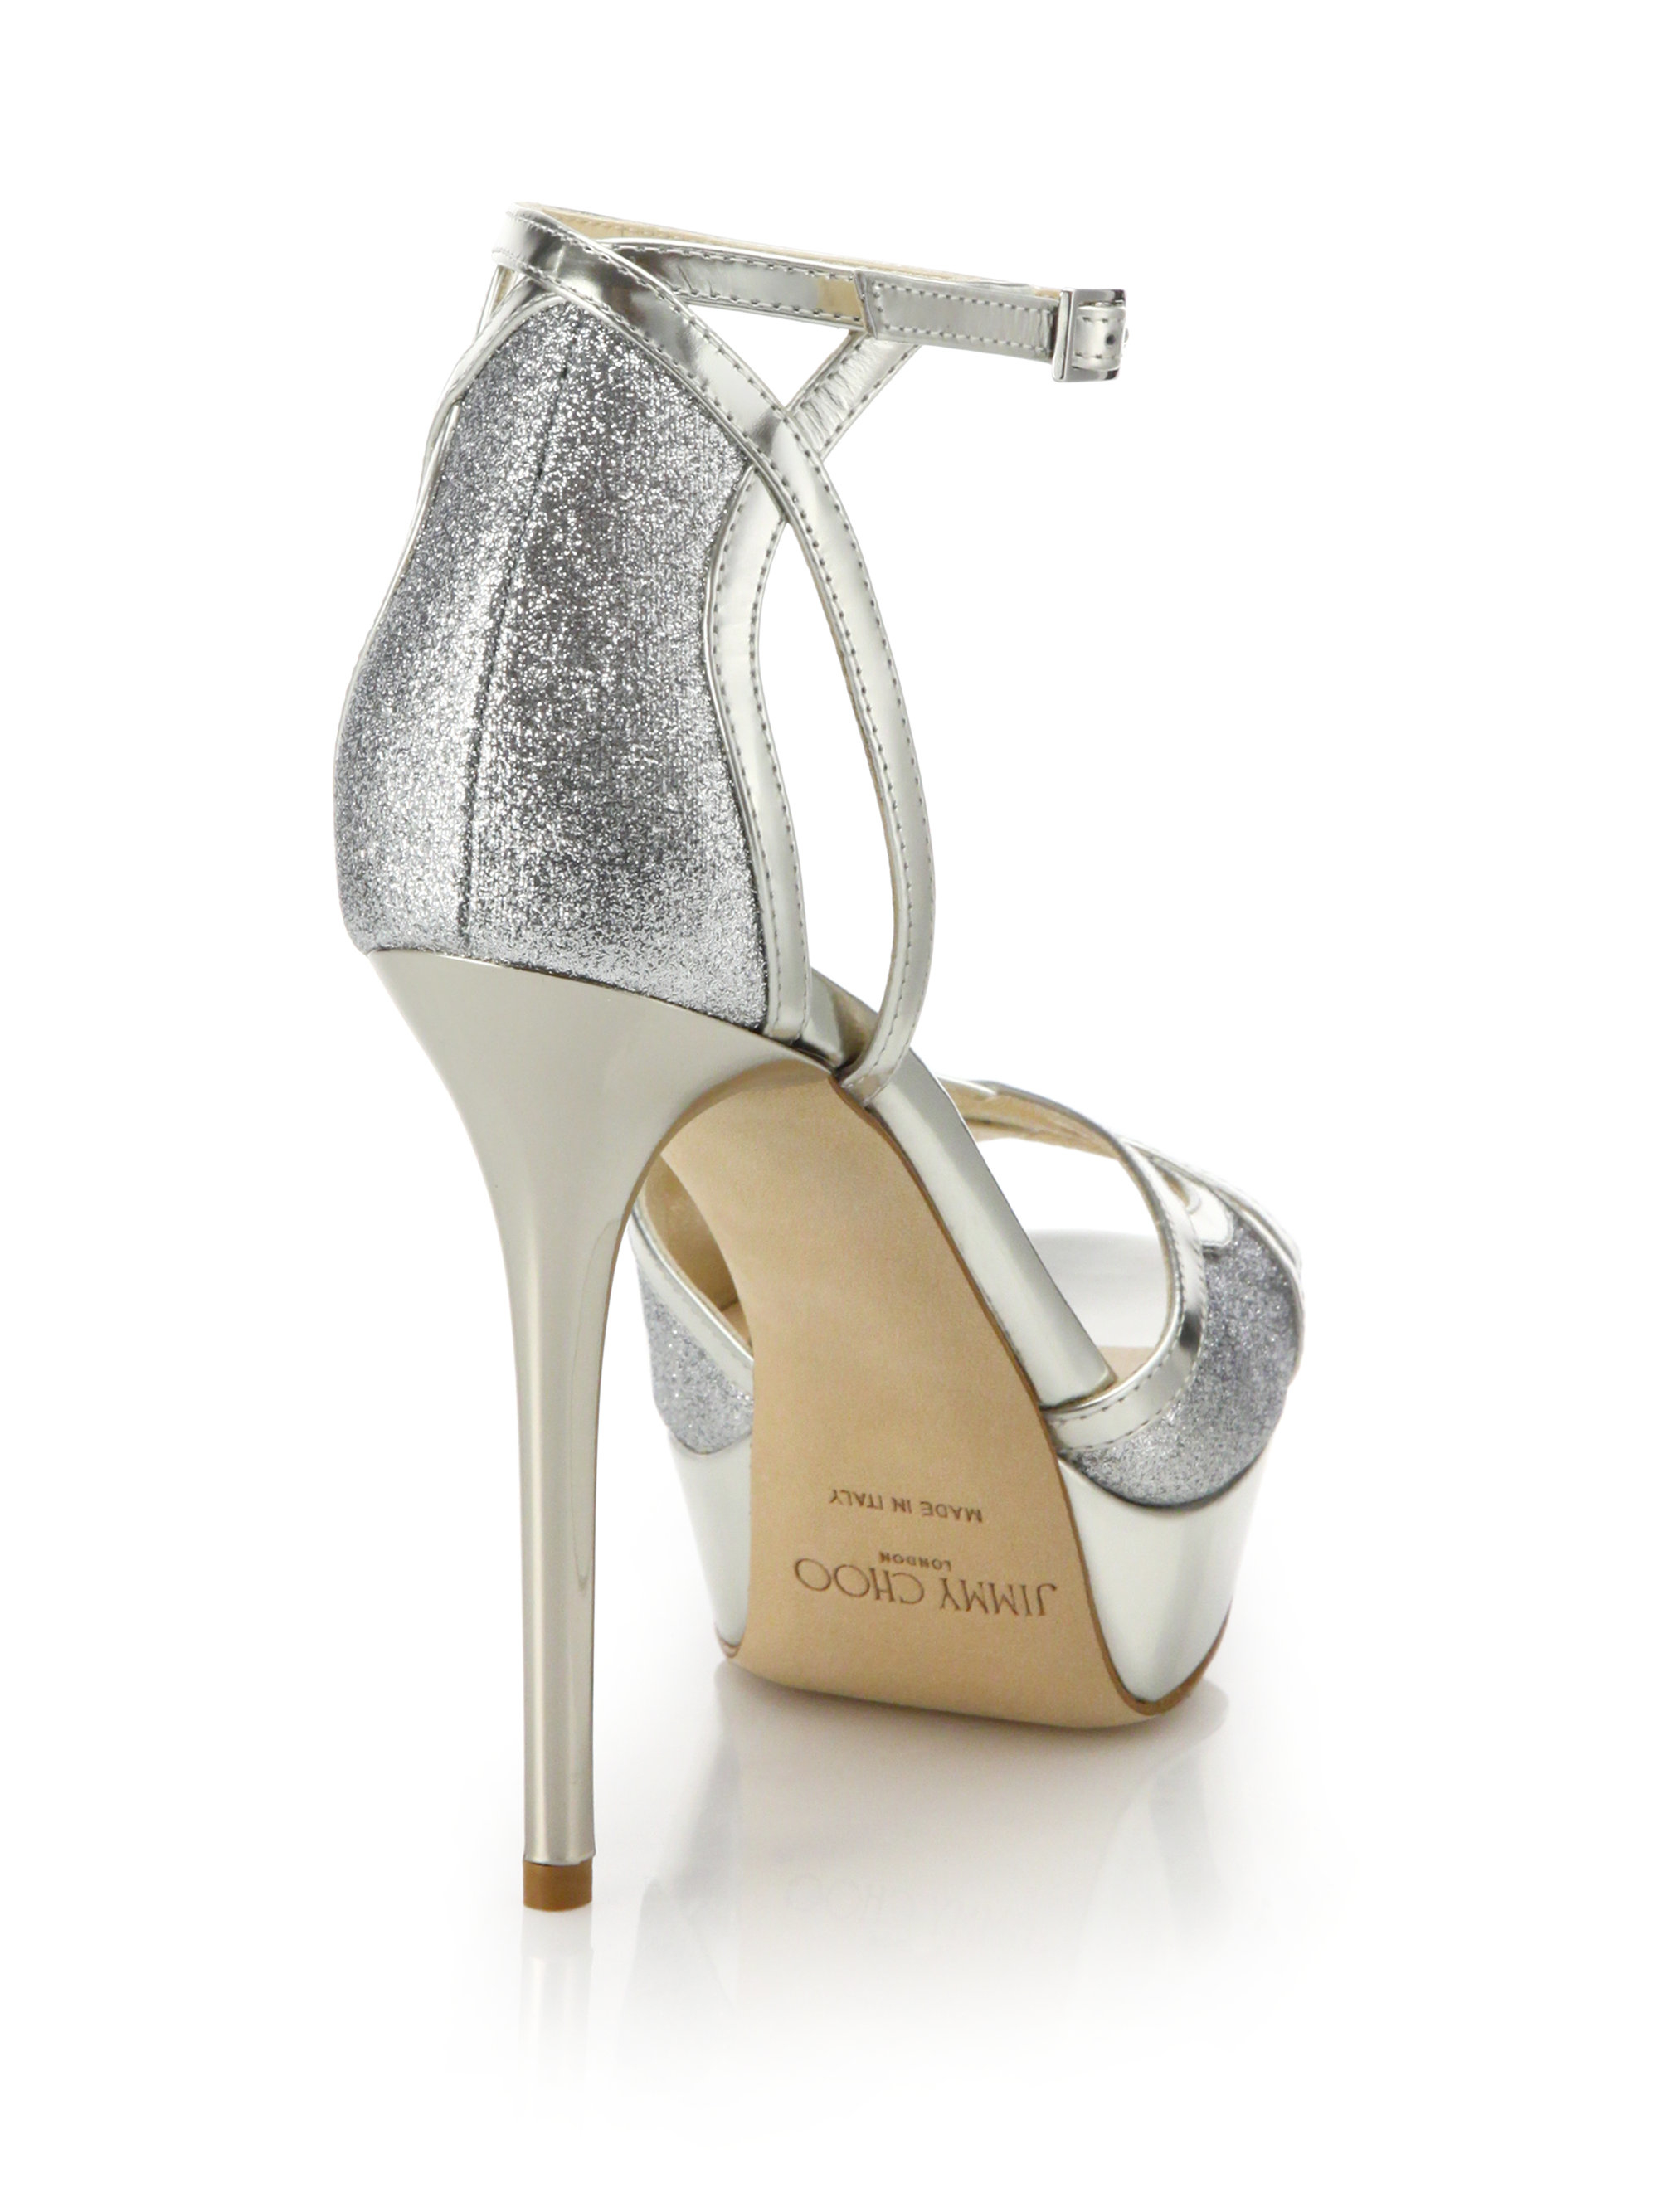 274778a126a2 Lyst - Jimmy Choo Laurita 135 Glittered Metallic Leather Platform Sandals  in Metallic